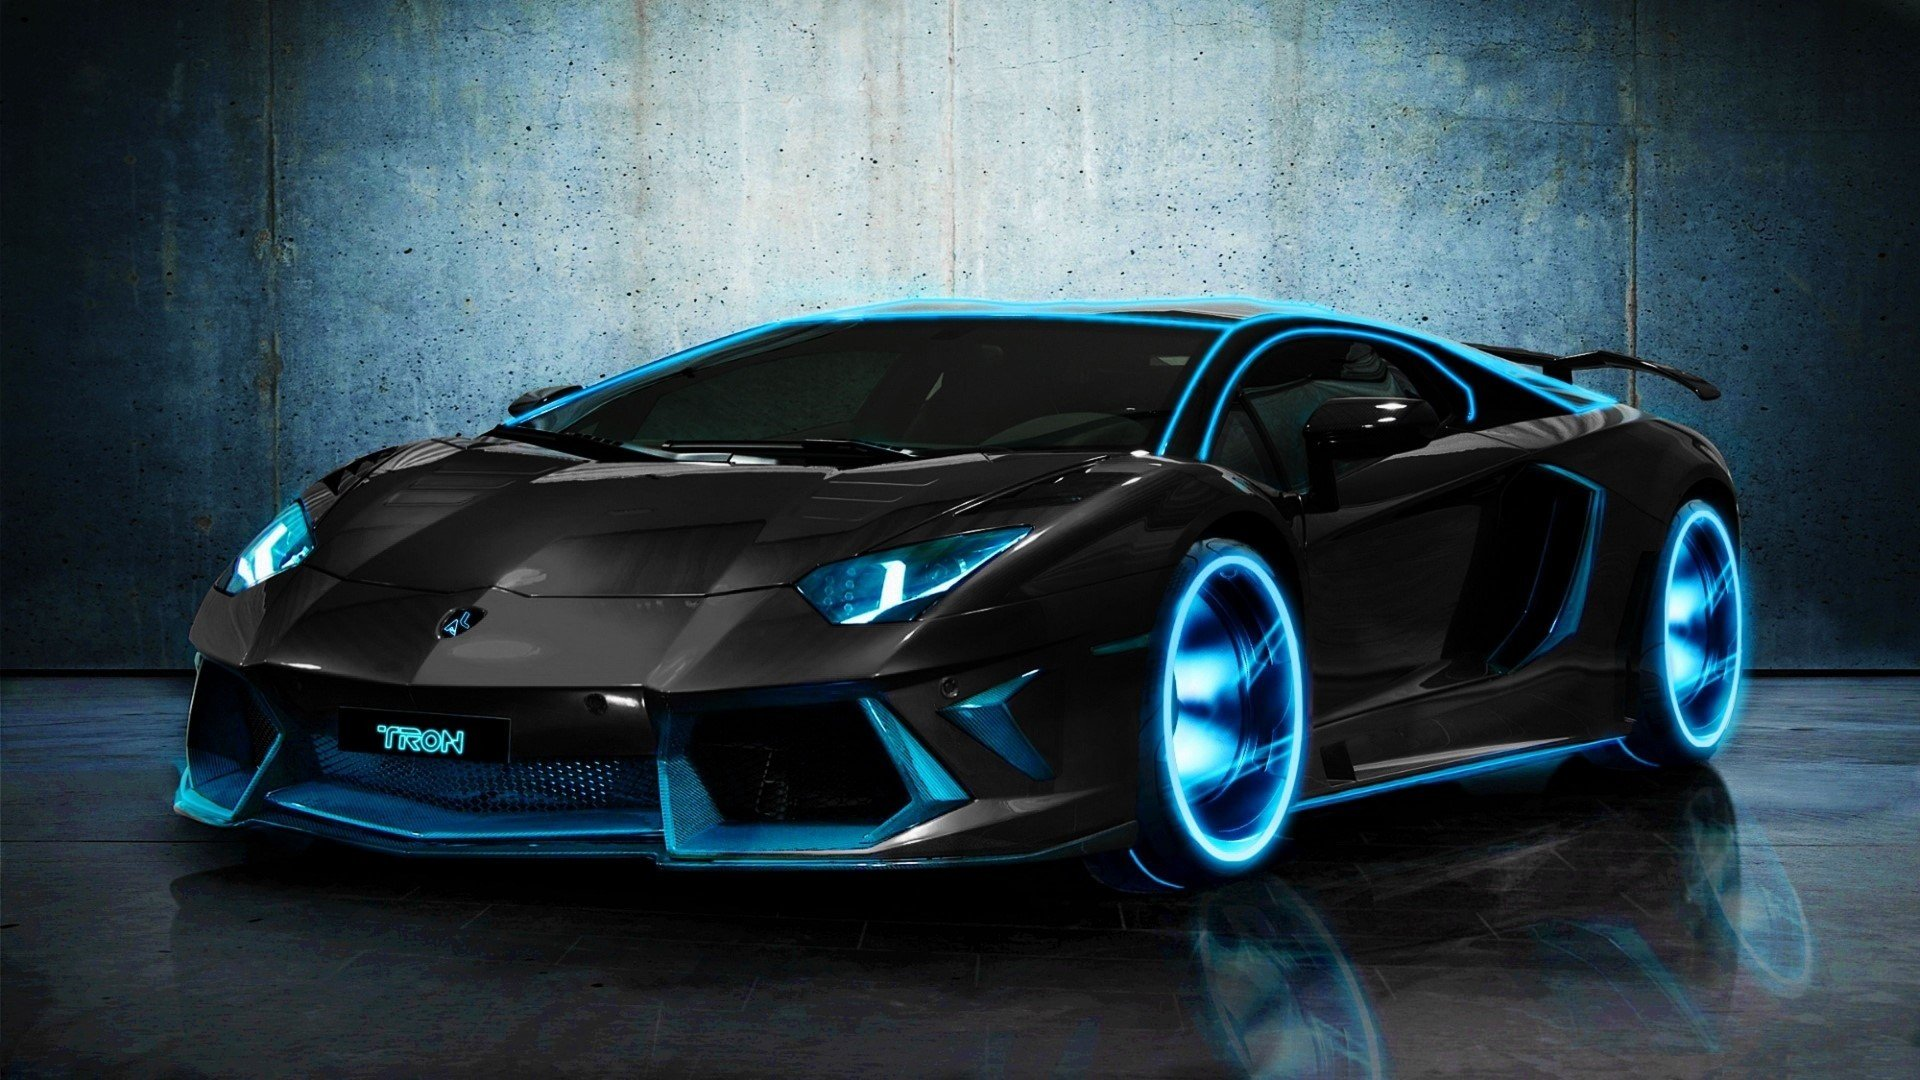 Car Lamborghini Tron Aventador Black HD Wallpaper HD Wallpapers 1920x1080